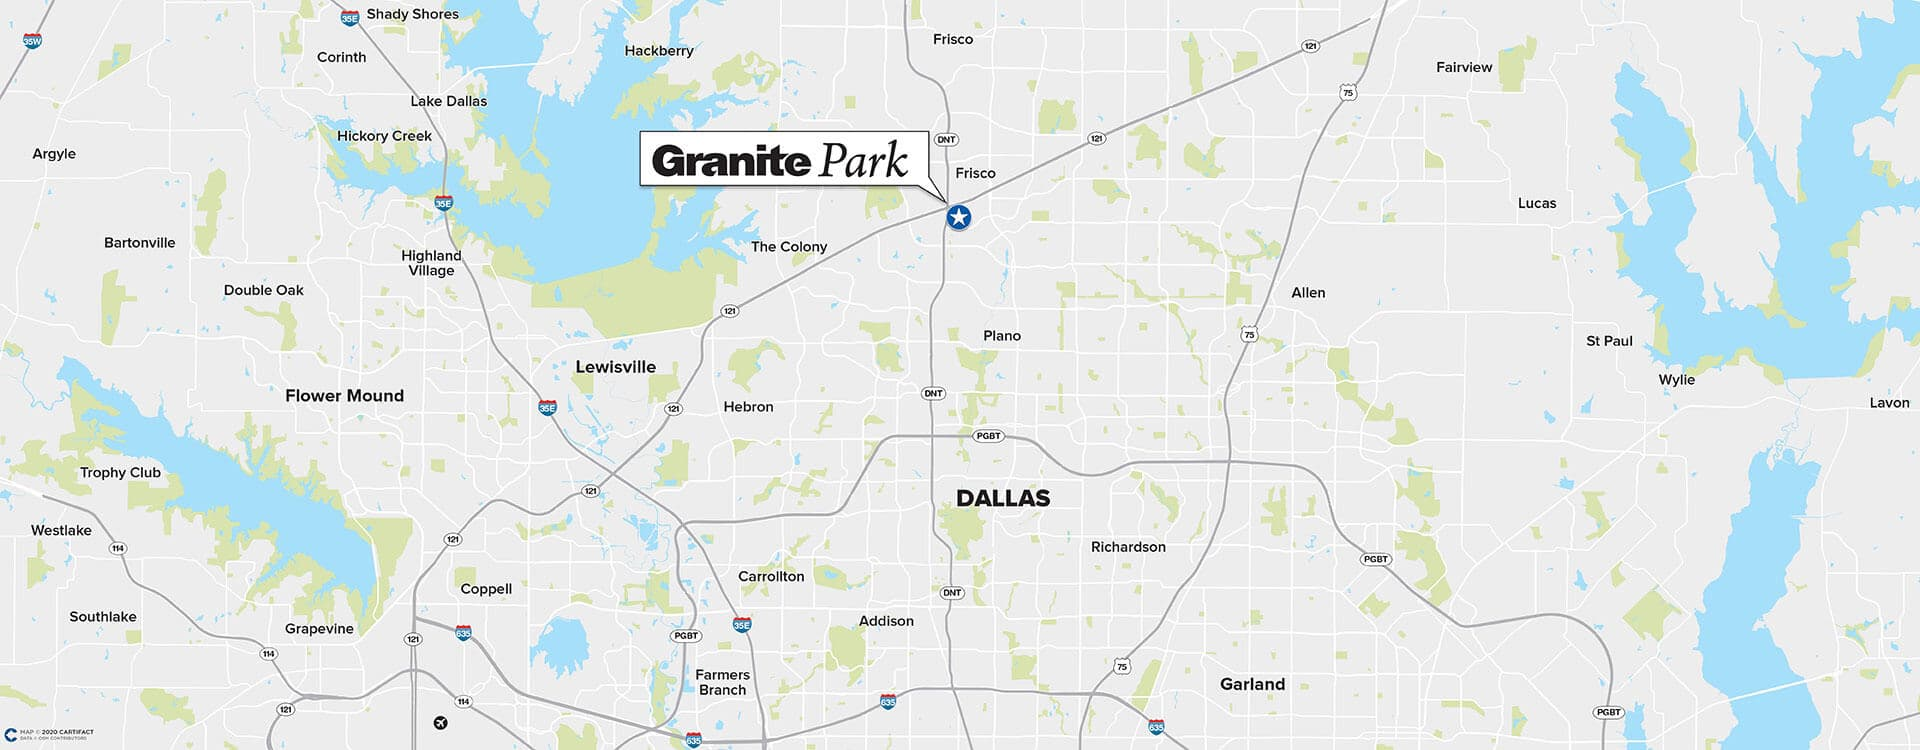 Granite Park Six location map